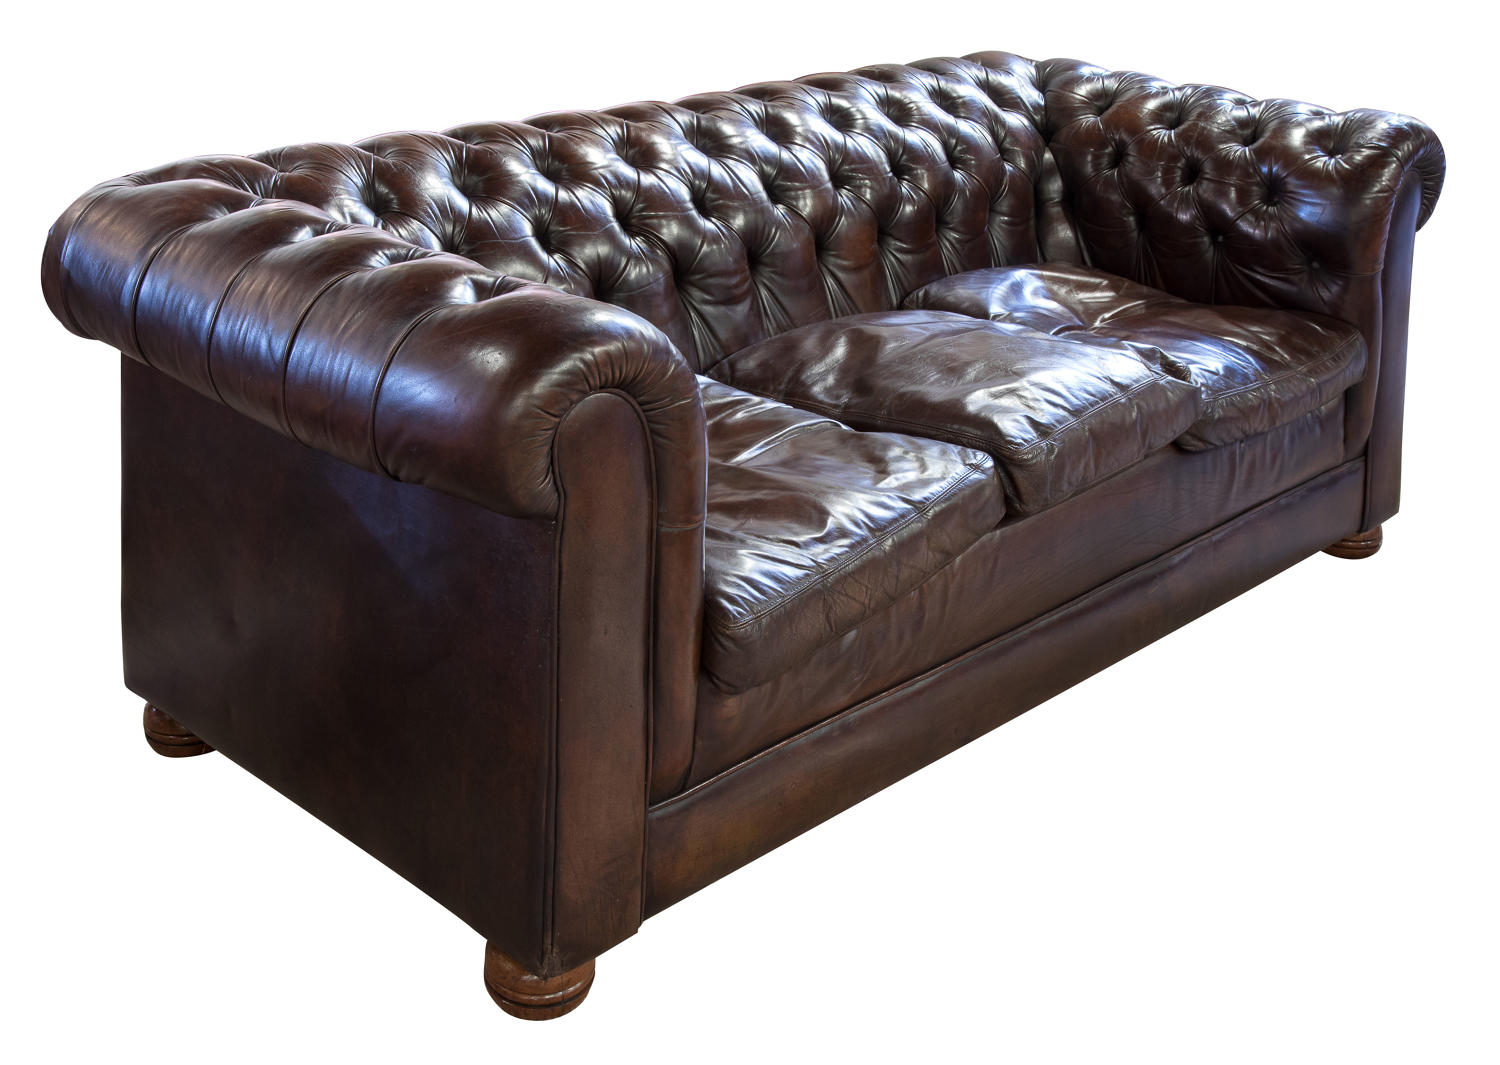 Brown leather chesterfield sofa in Chaise Longues, Sofas & Day Beds